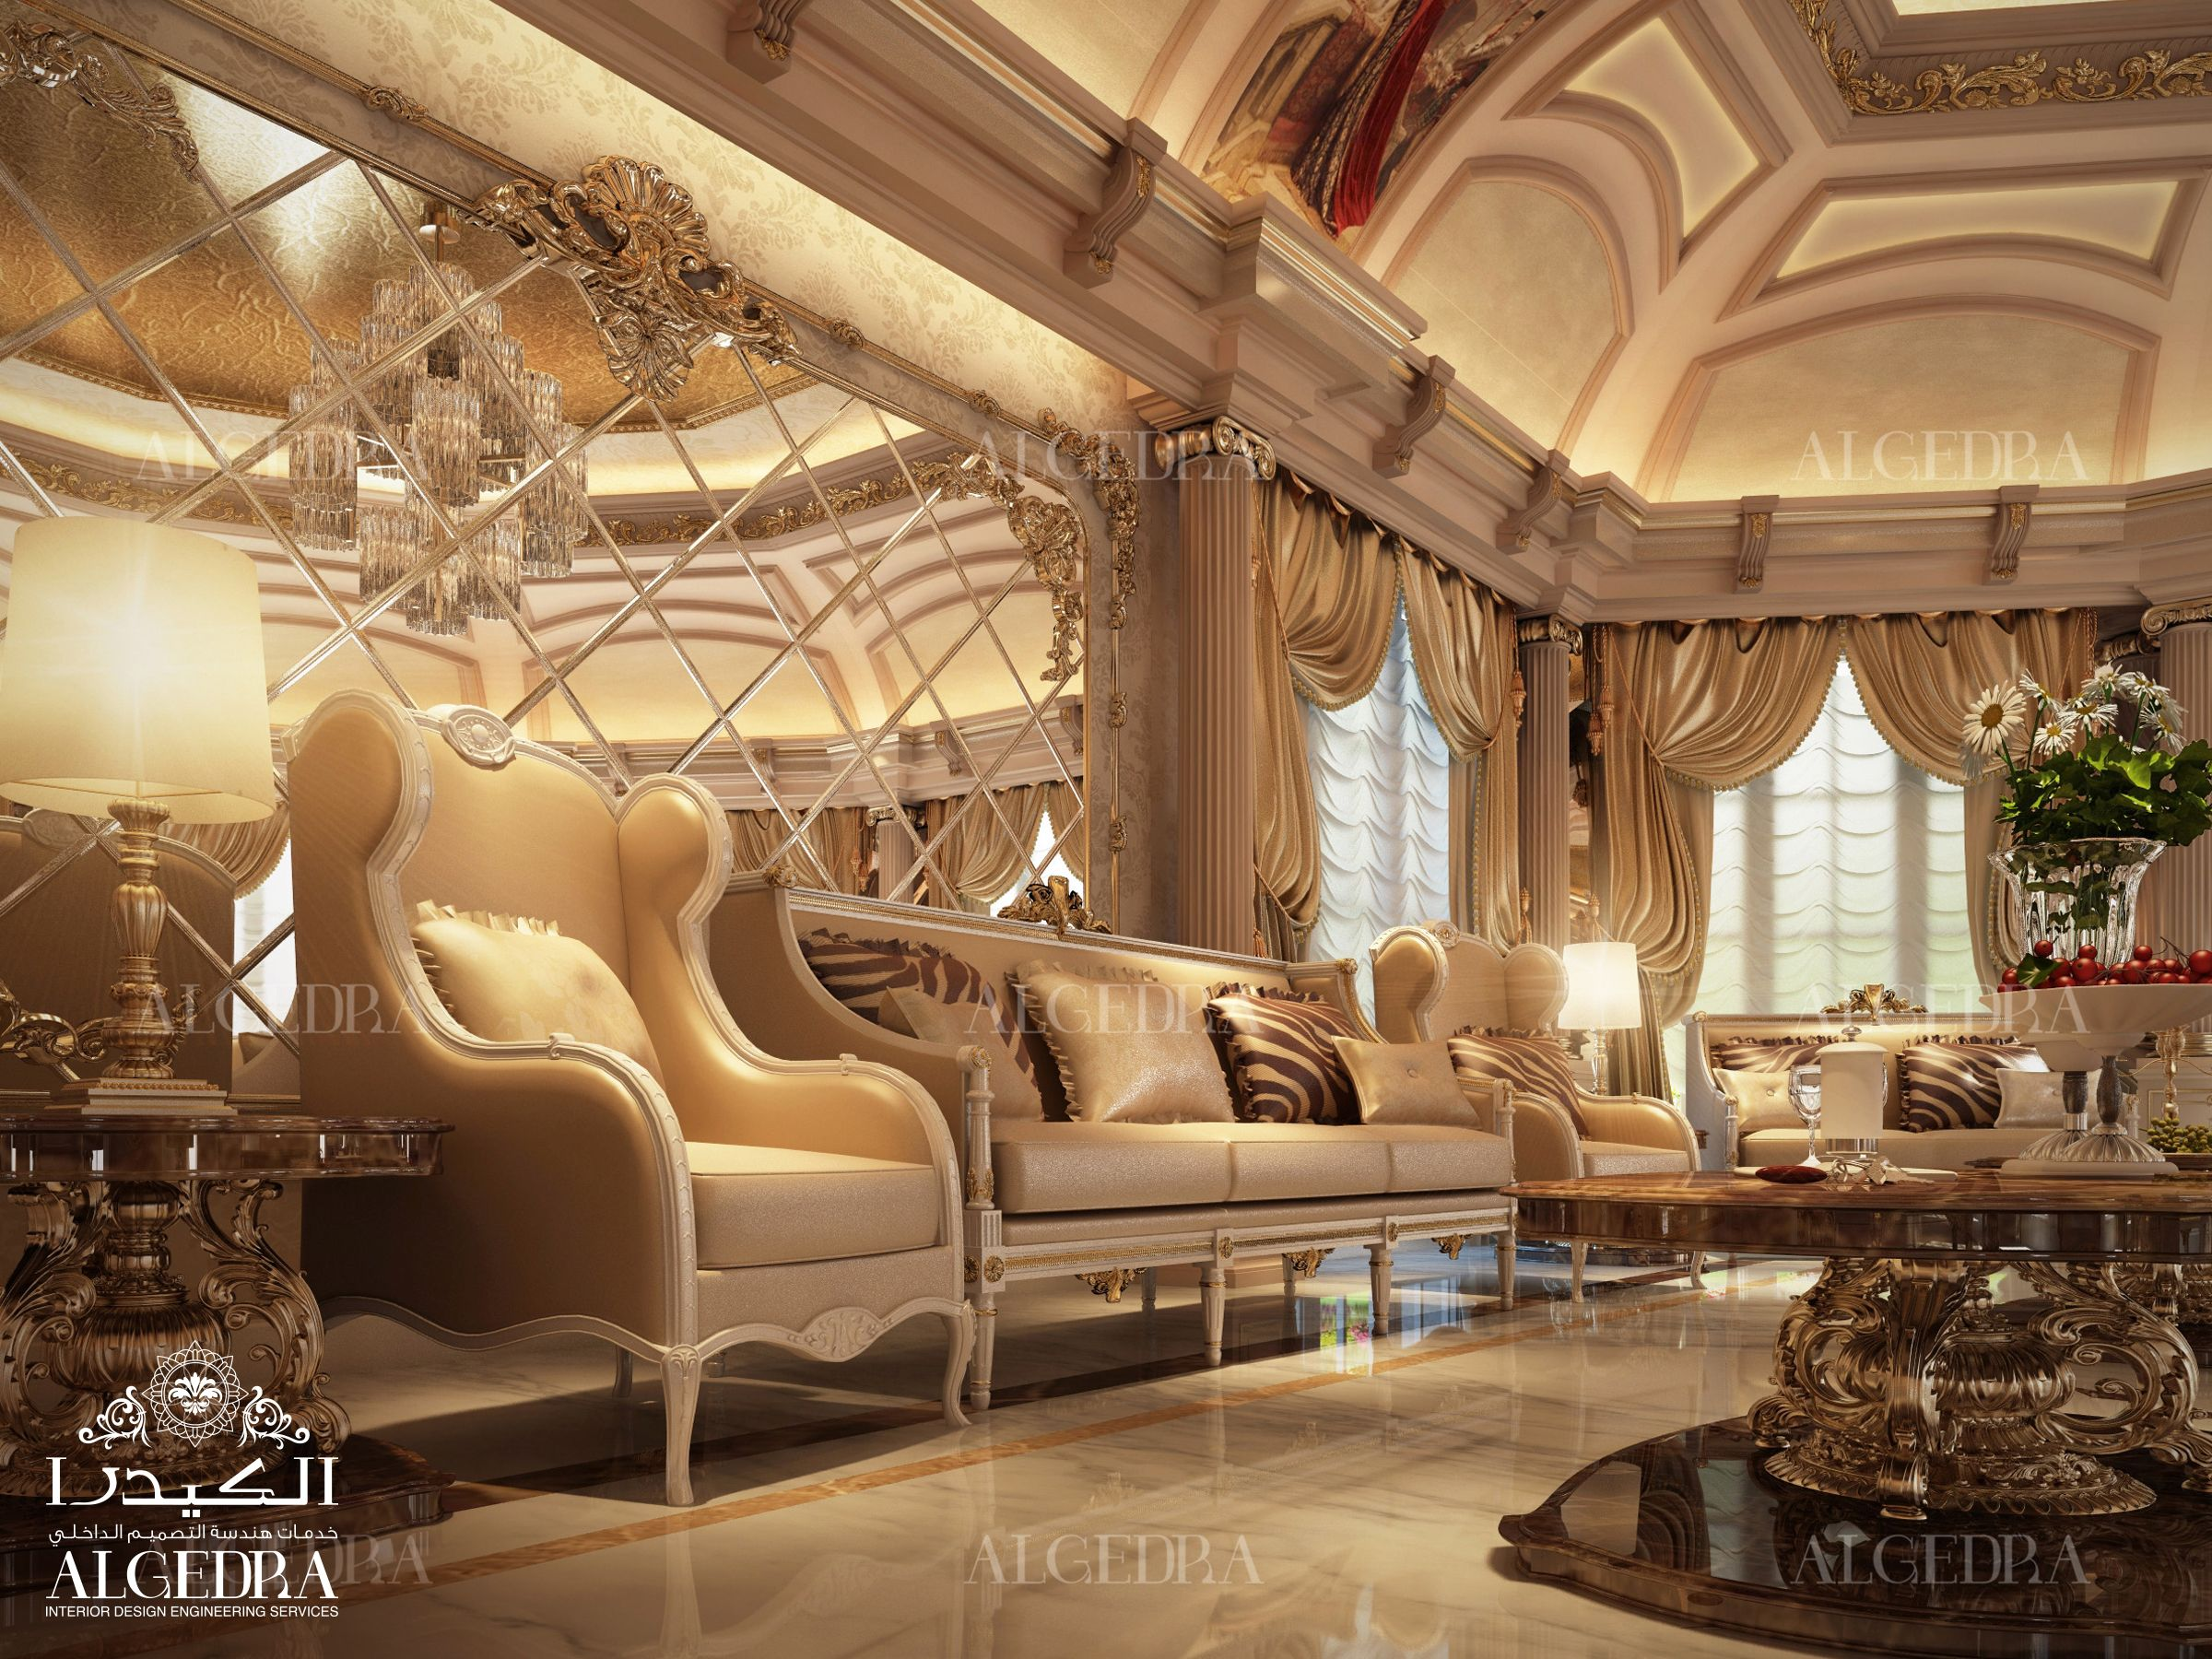 You can have a look at our lavish women majlis designs in the gallery - Explore Residential Interior Design And More